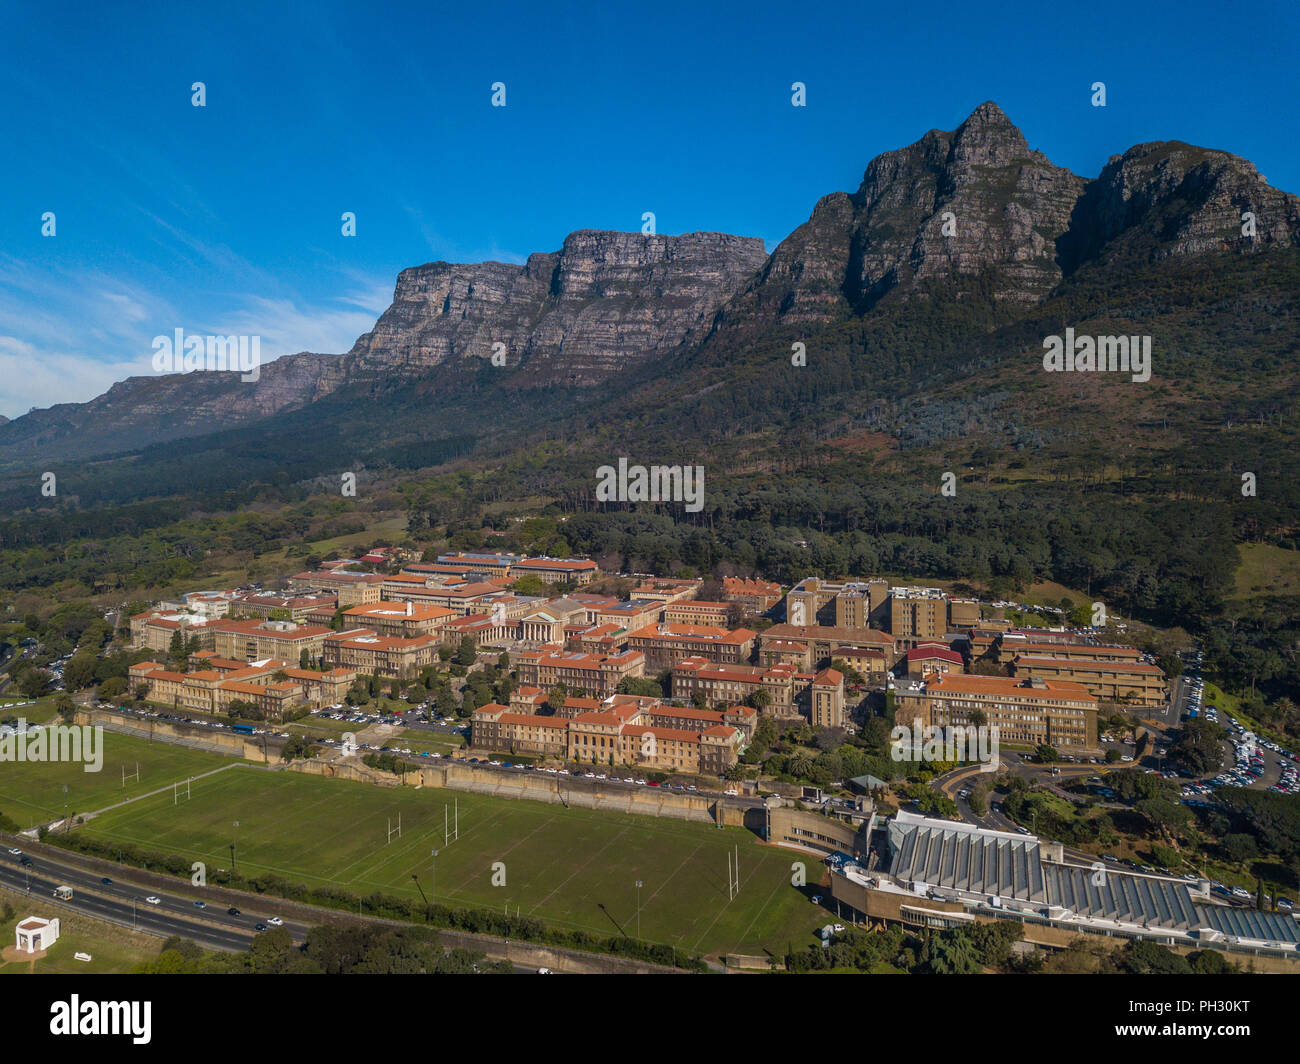 Aerial view of the University of Cape Town, Under the towering peaks of Devil's Peak. - Stock Image